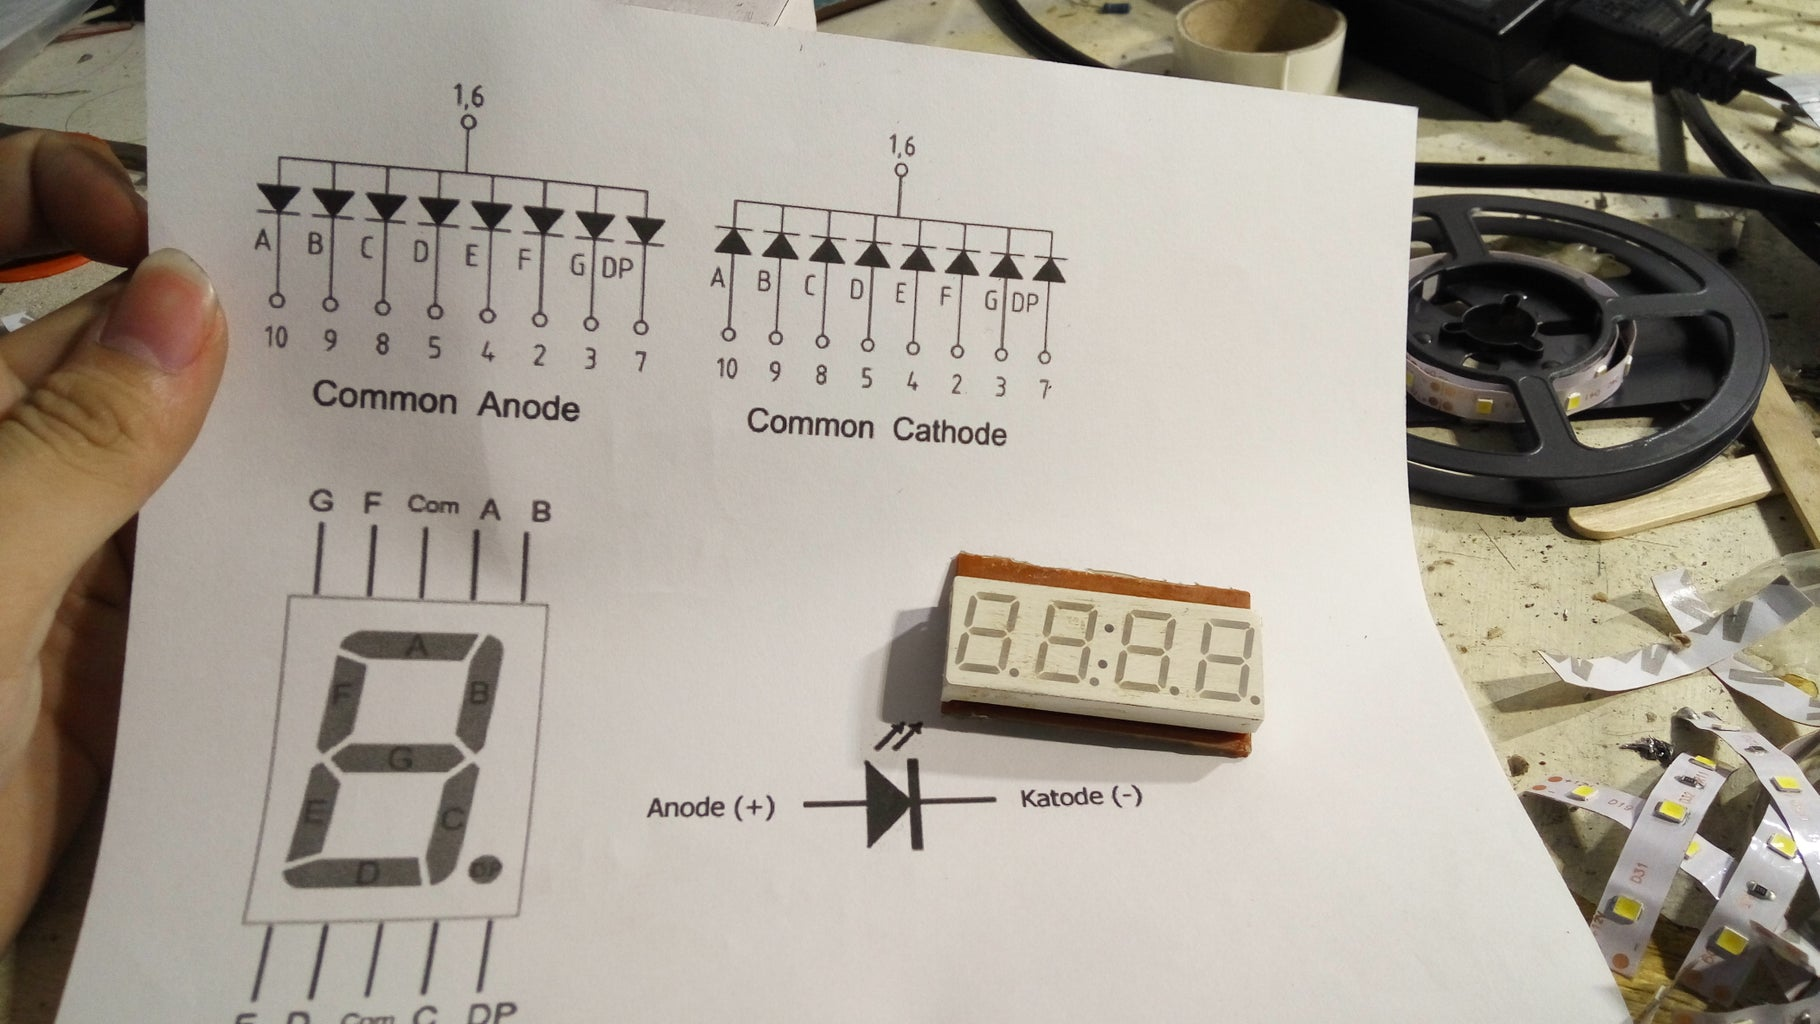 What 7 Segment Common Pin Type Do You Have? Anode or Cathode?